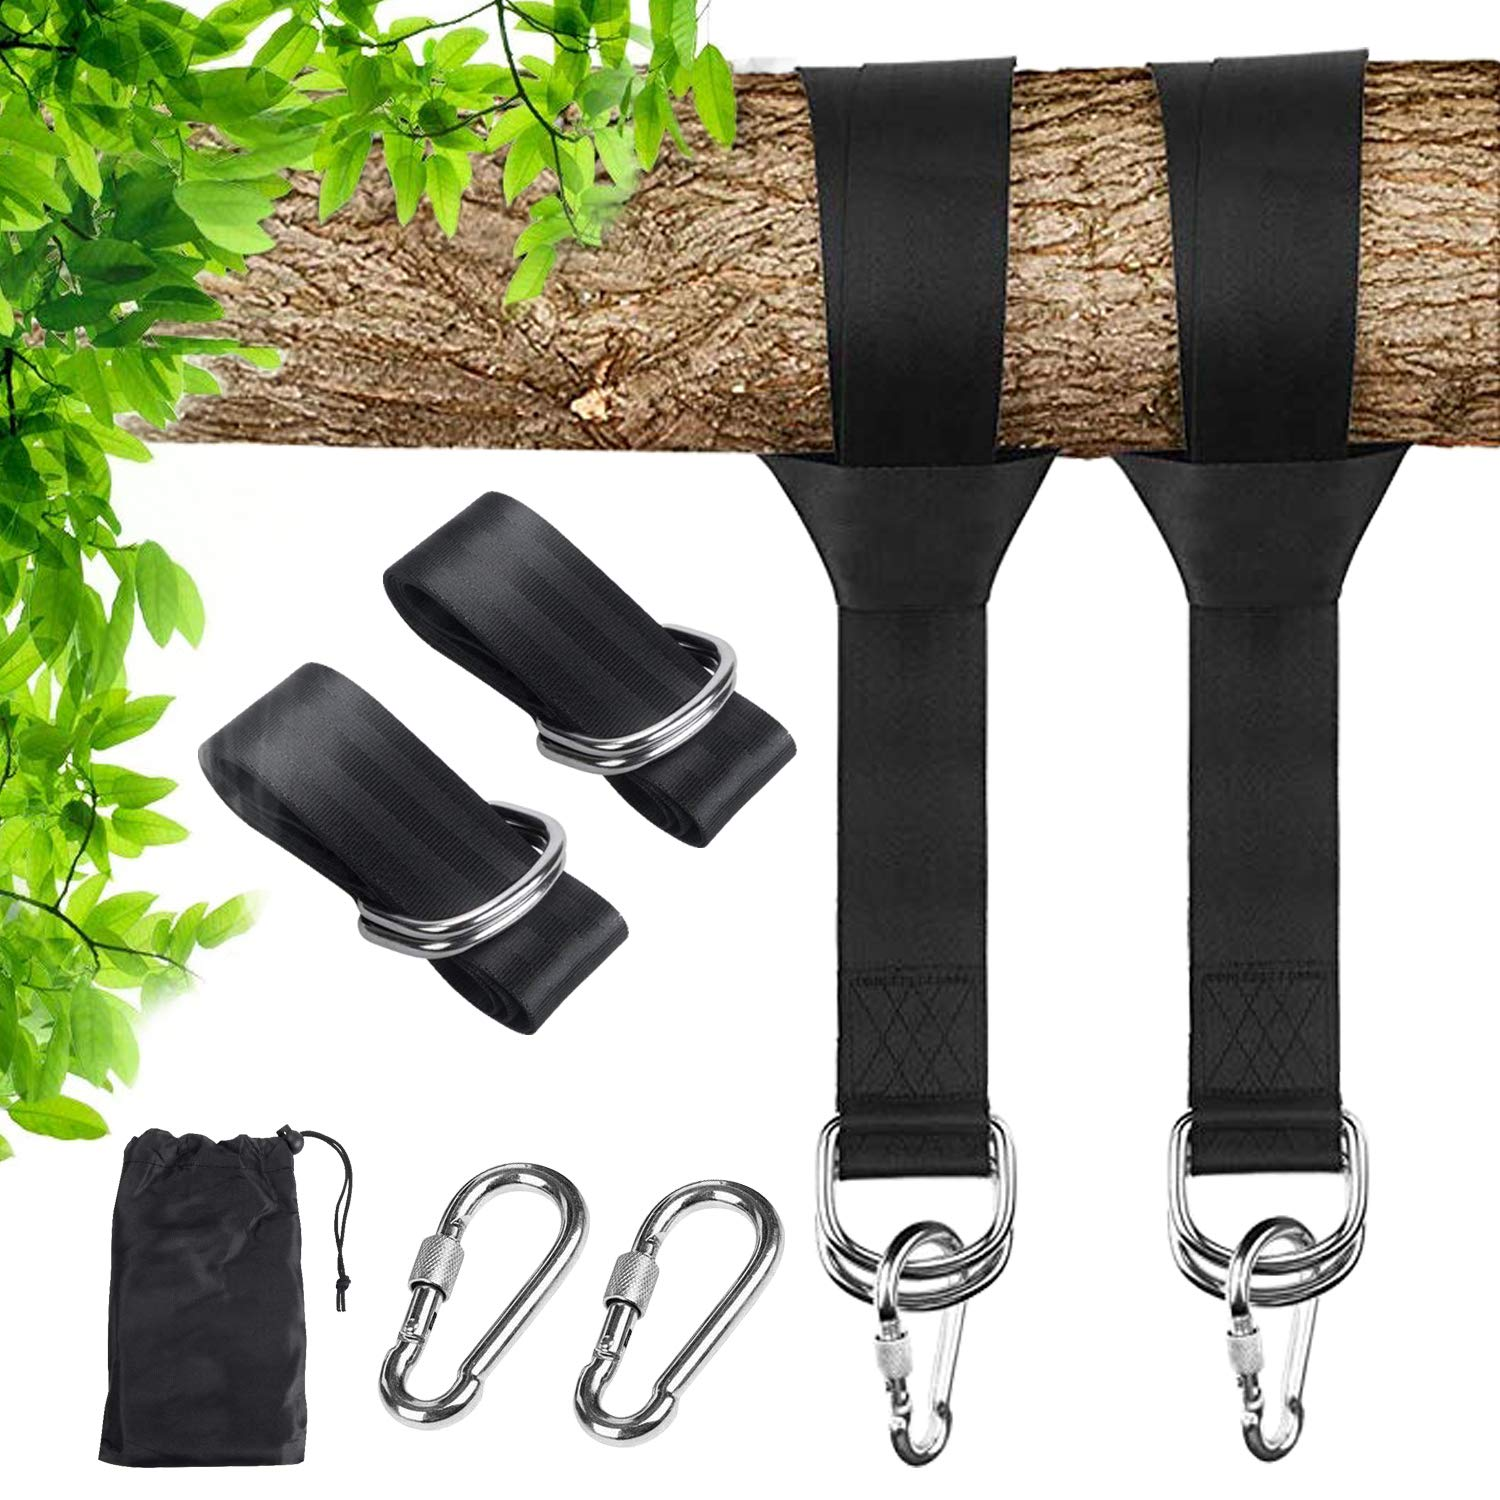 FIDGETERRELAX Tree Swing and Hammocks, Hang Straps Kit Holds 2200 lbs with Carry Pouch Safety Lock Carabiner Hooks for Kids and Adults